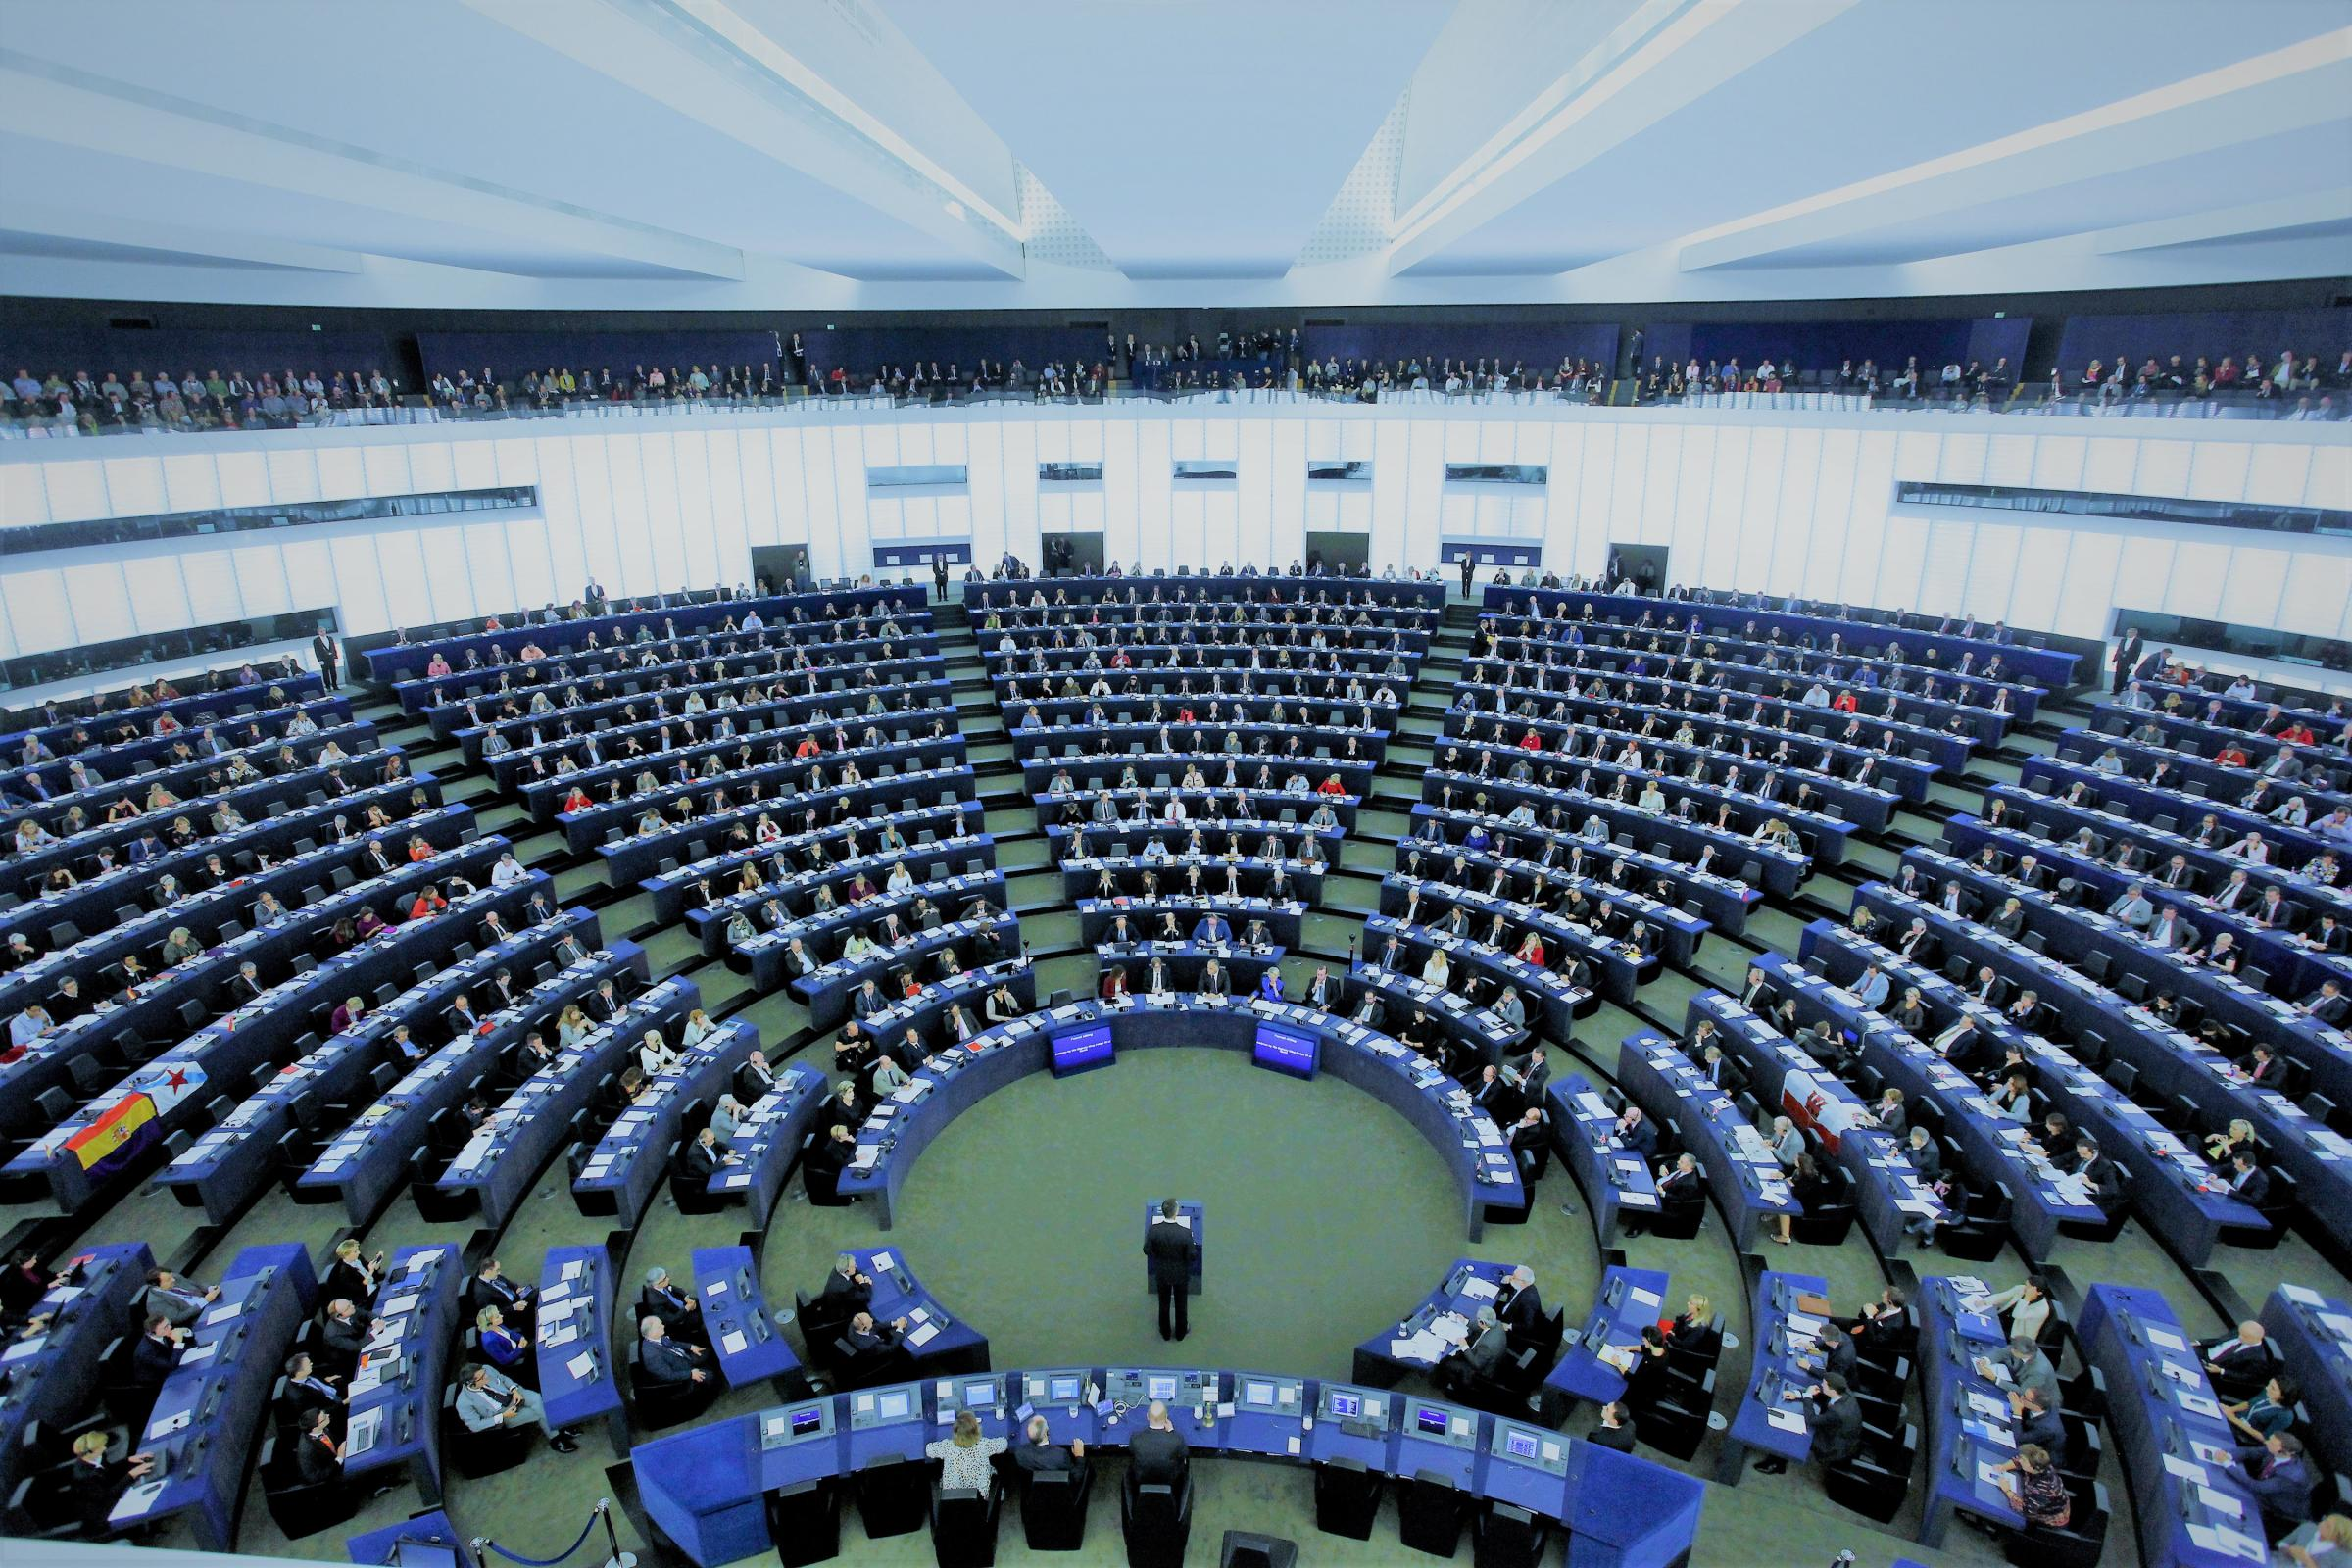 The European Parliament ... we need to have representation there while we remain in EU